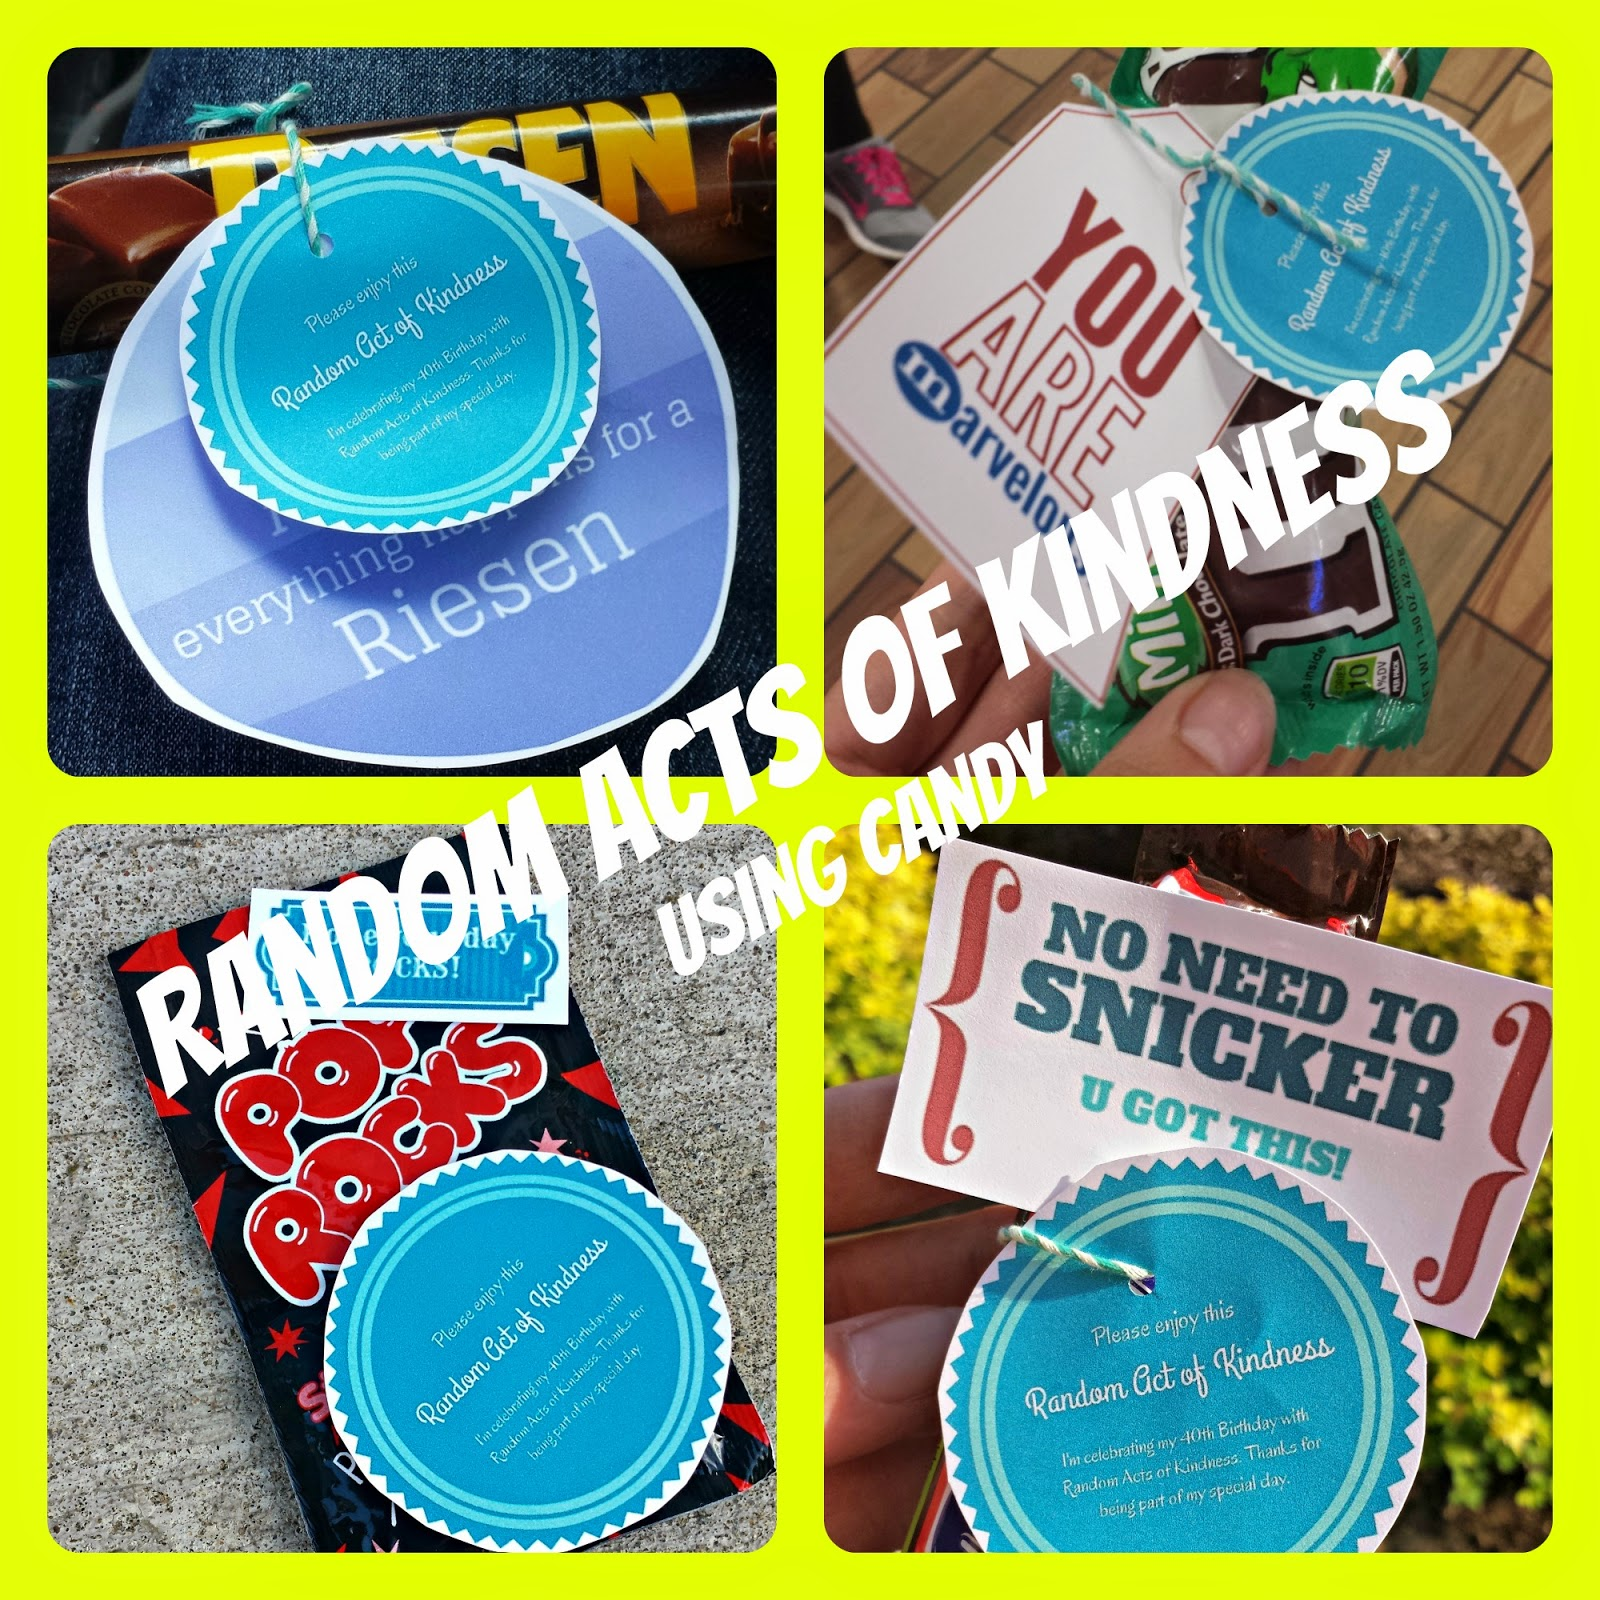 #RAOK (Random Acts of Kindness) using candy